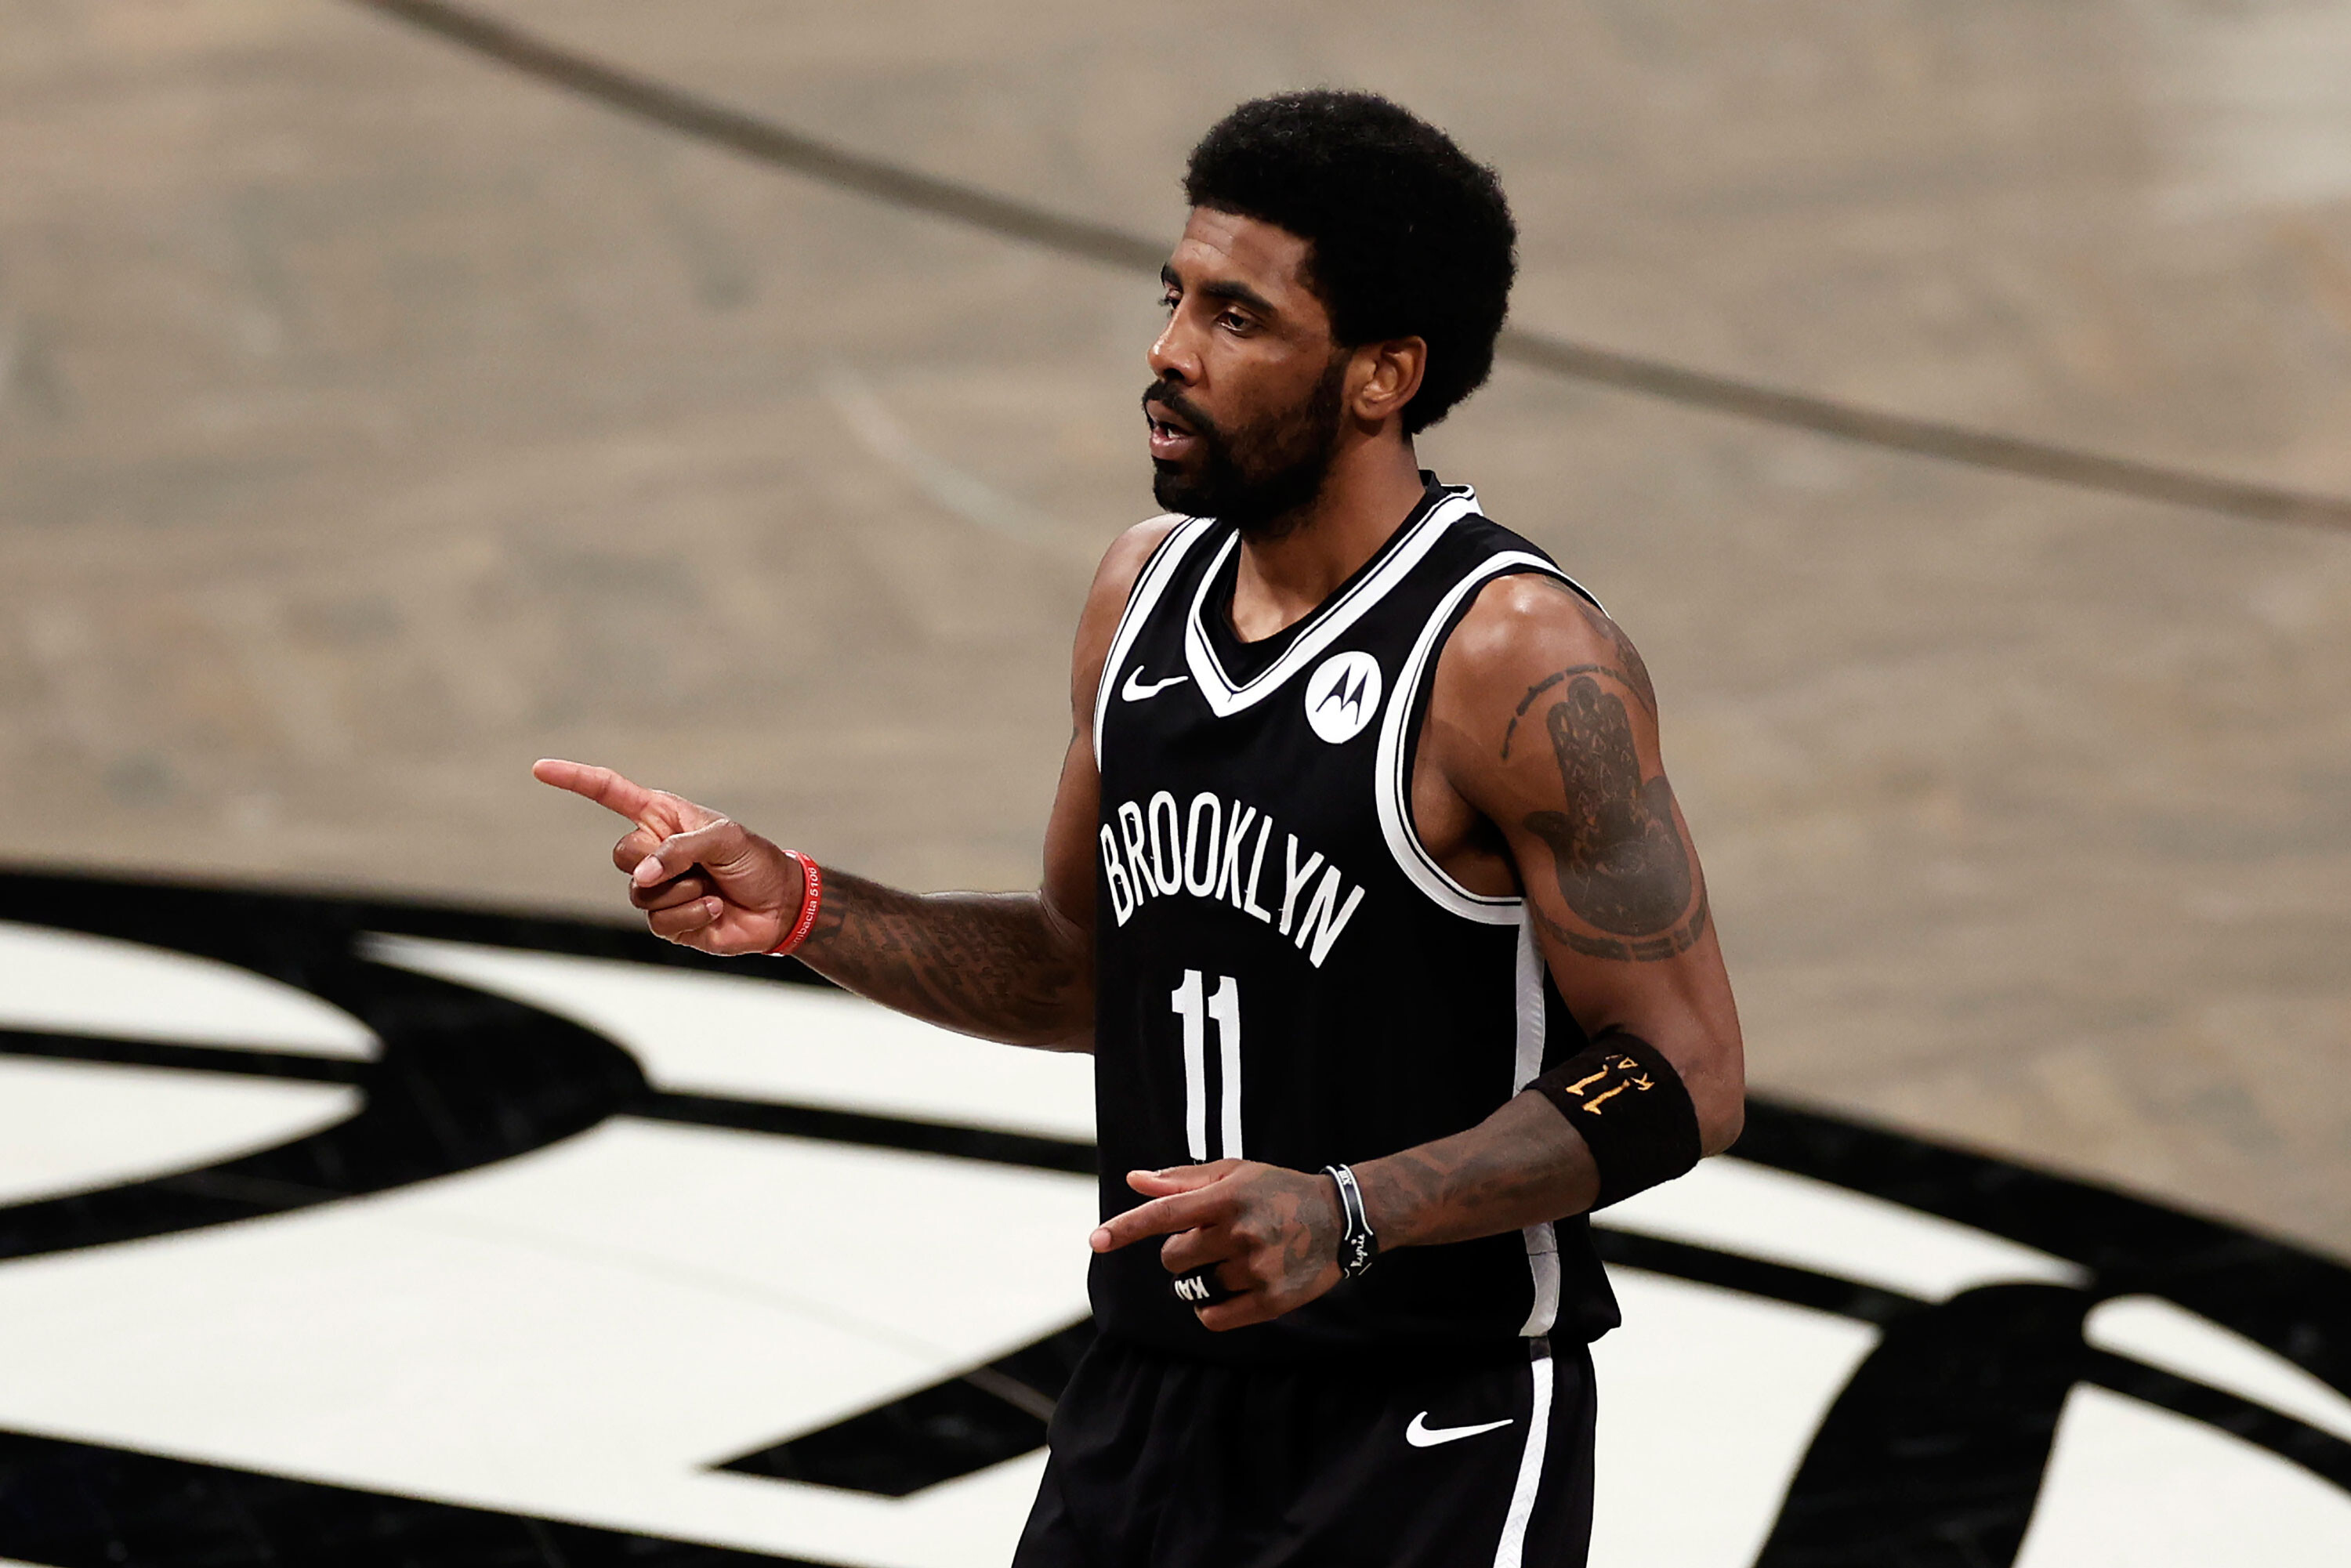 Brooklyn Nets star Kyrie Irving says he's unvaccinated, a day after his team says he won't be allowed to play